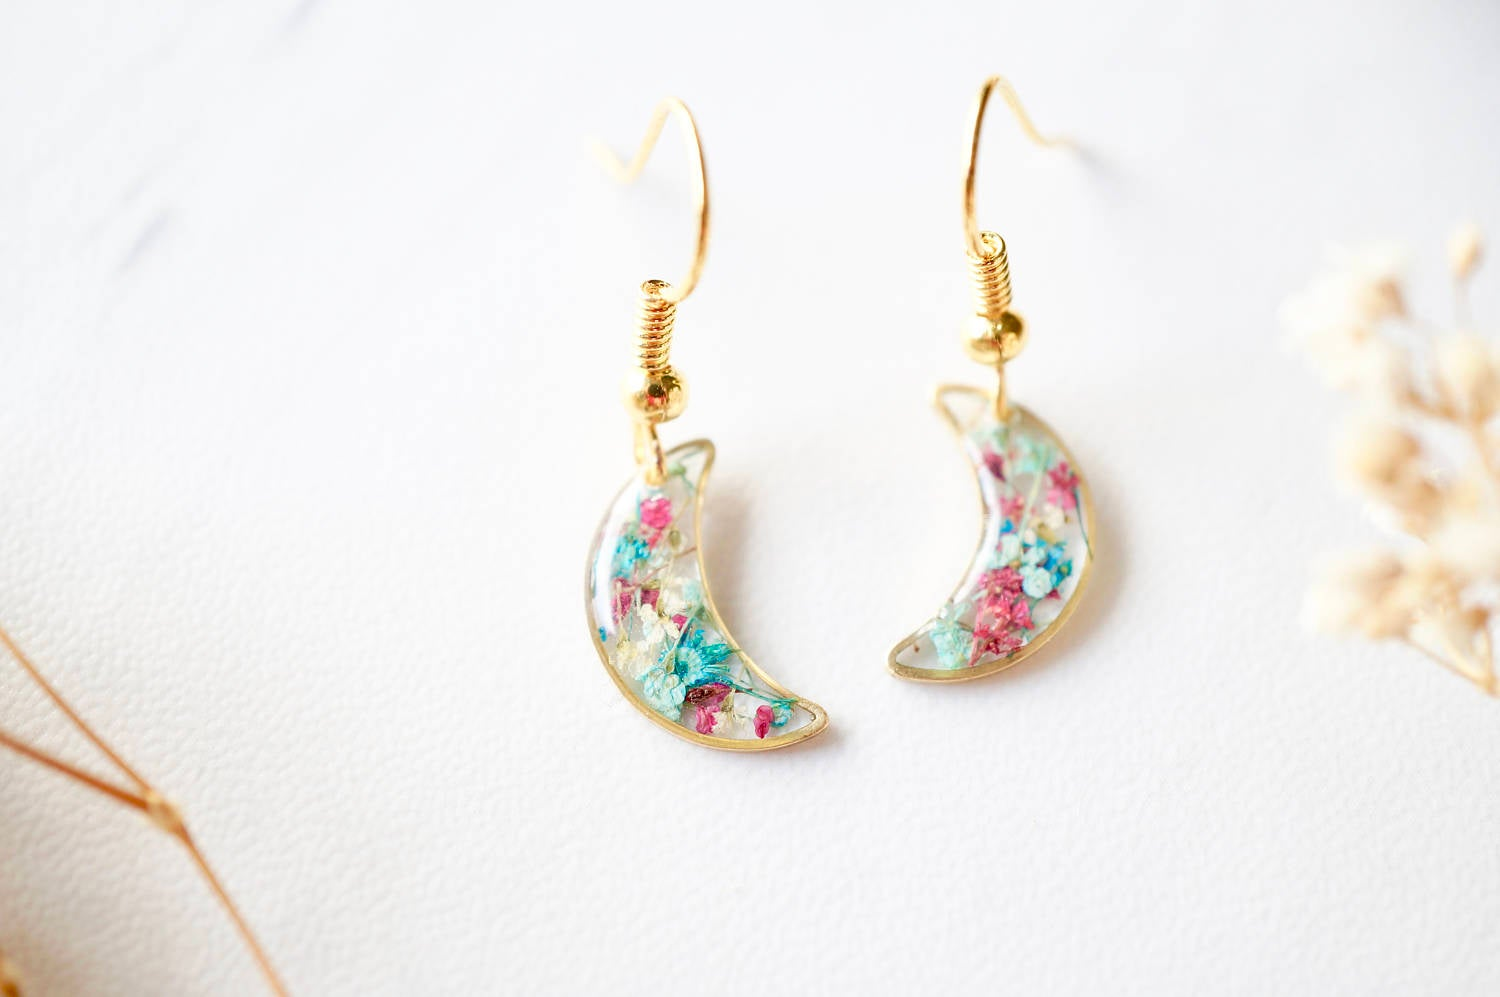 Real Pressed Flowers and Resin Earrings, Gold Celestial Moons in Maroon Mint Teal White